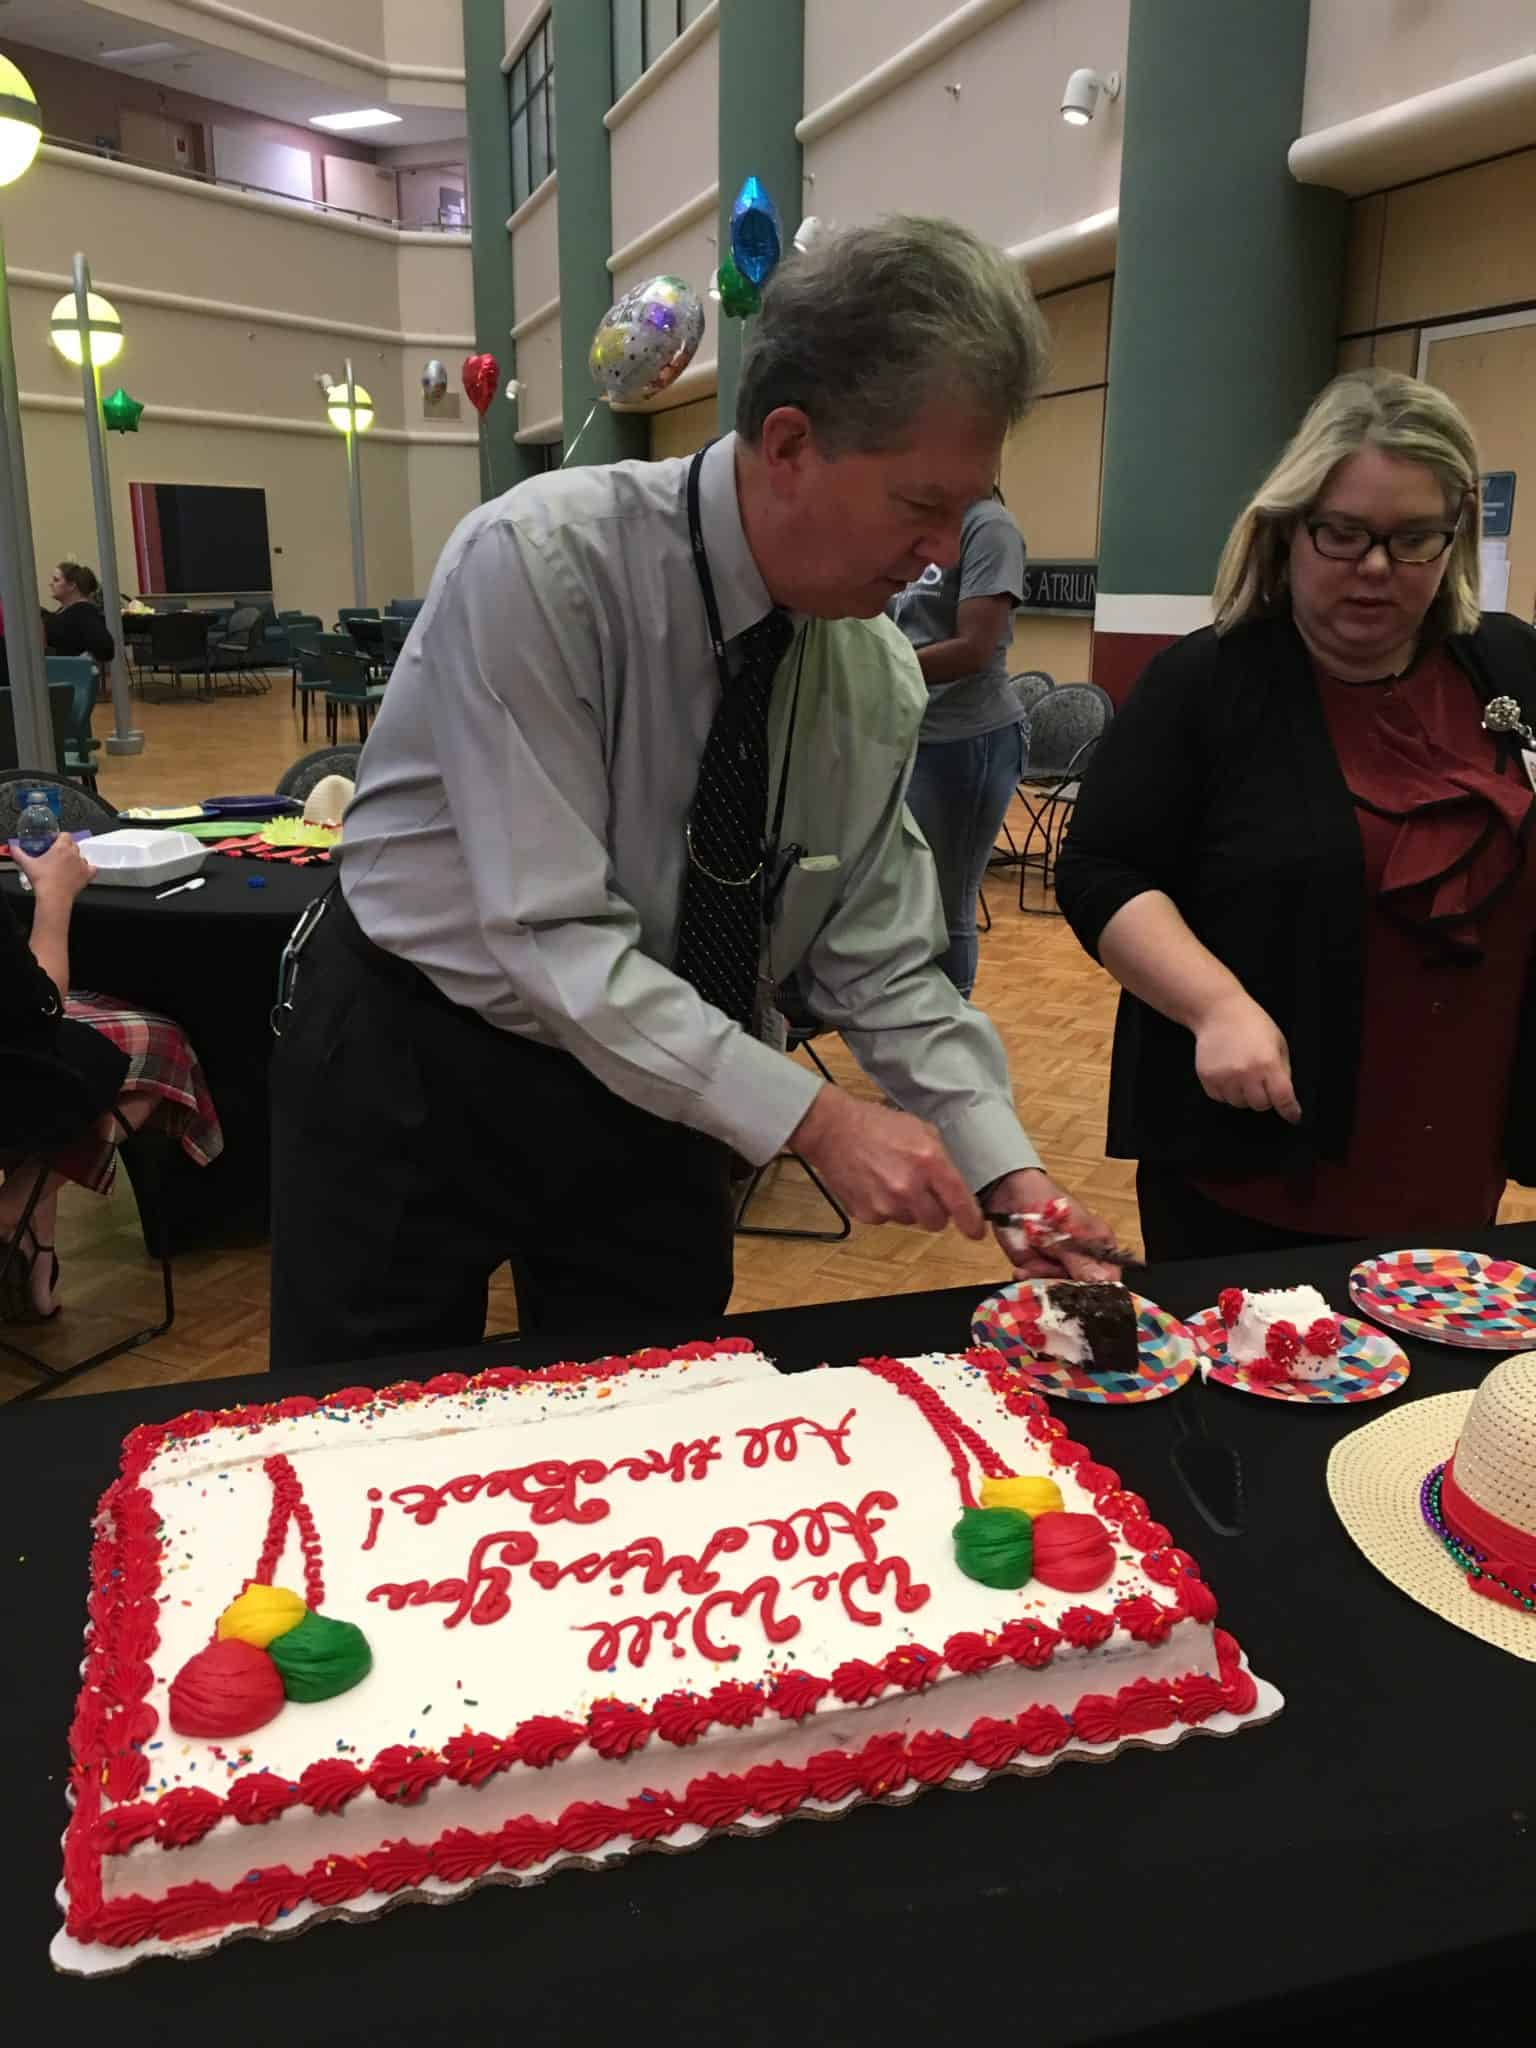 Rod Romily cuts his retirement cake